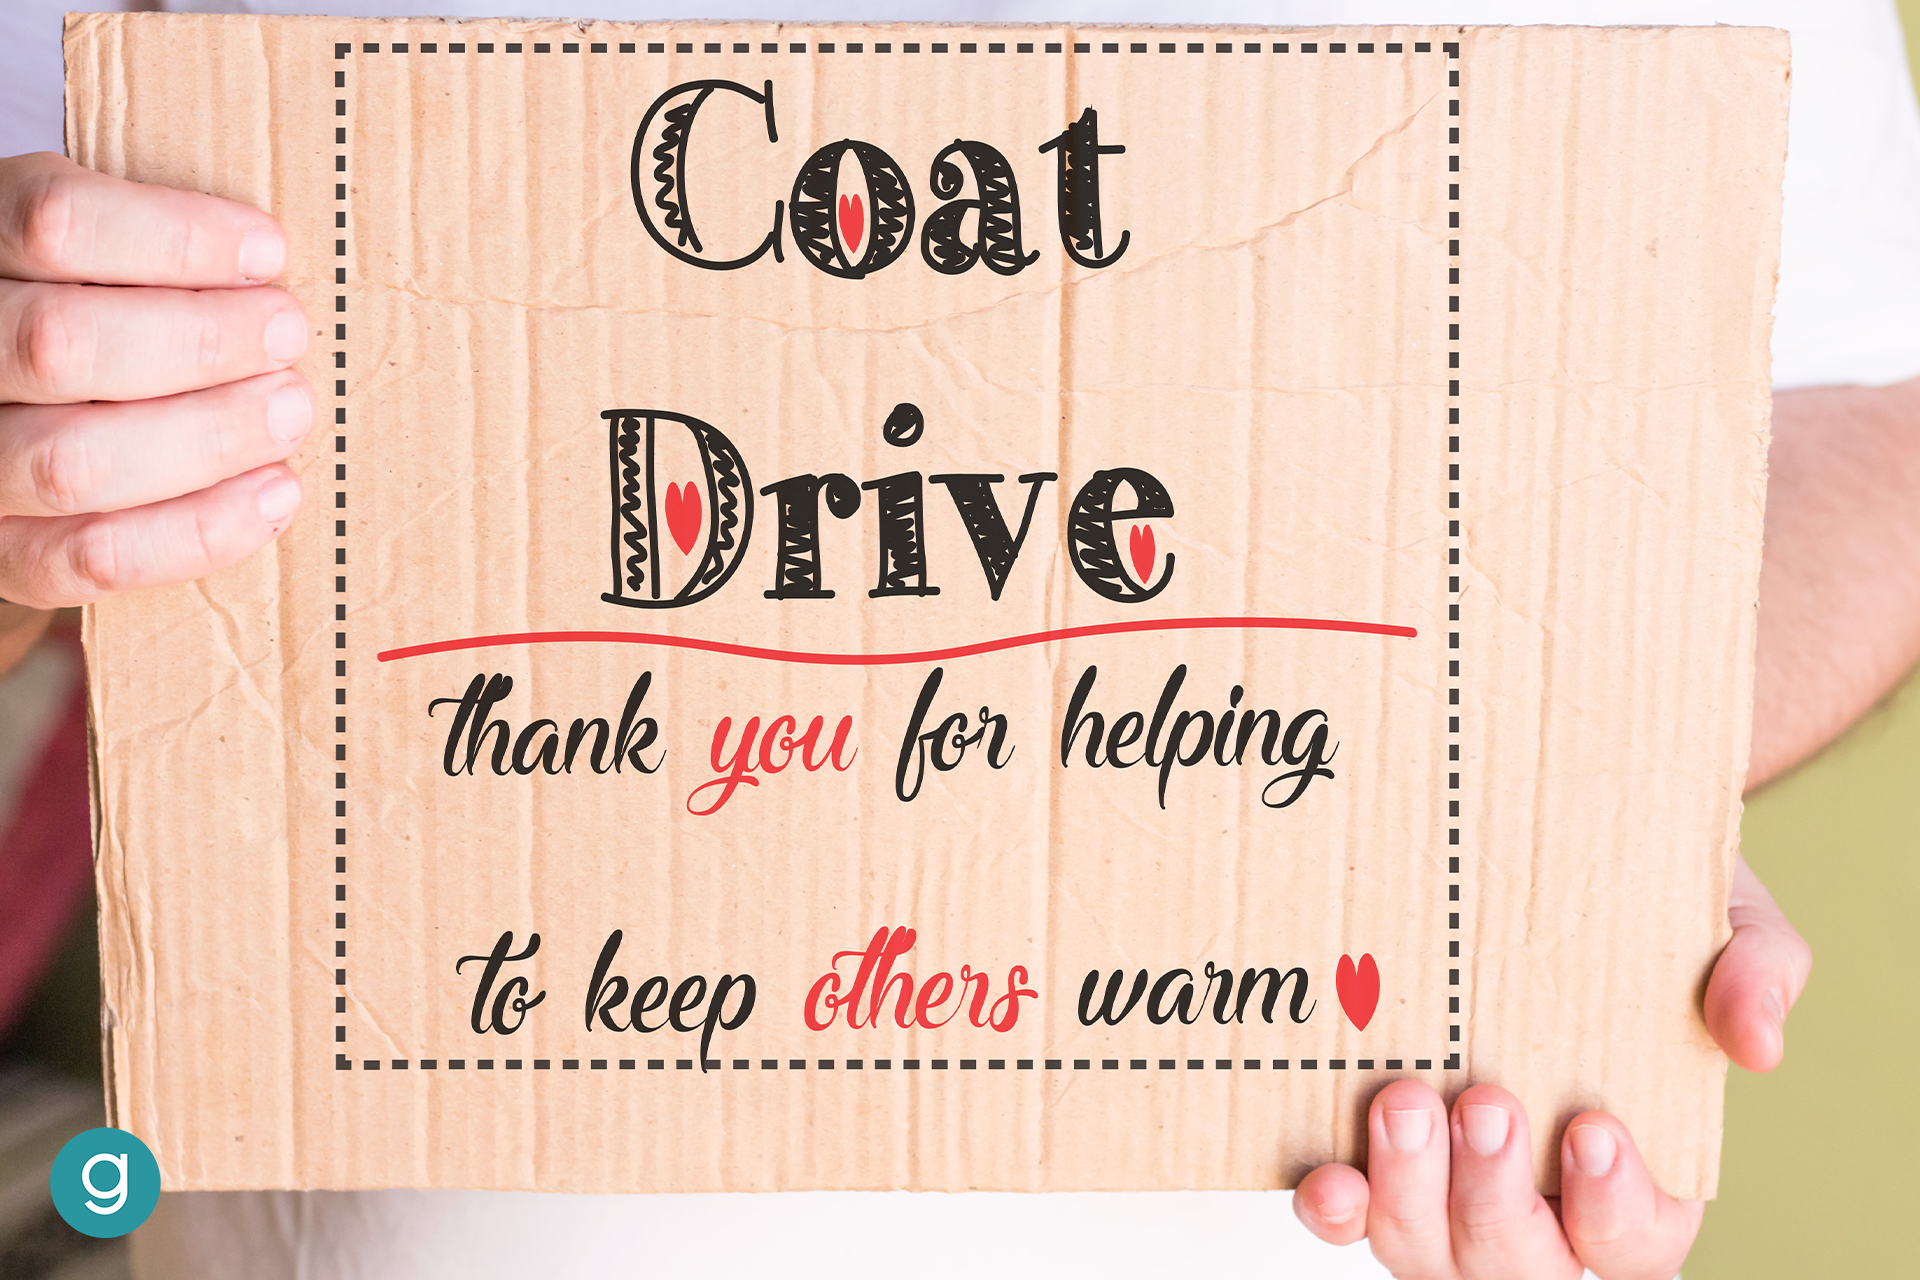 Link to Drive-Thru Coat Drive detail page